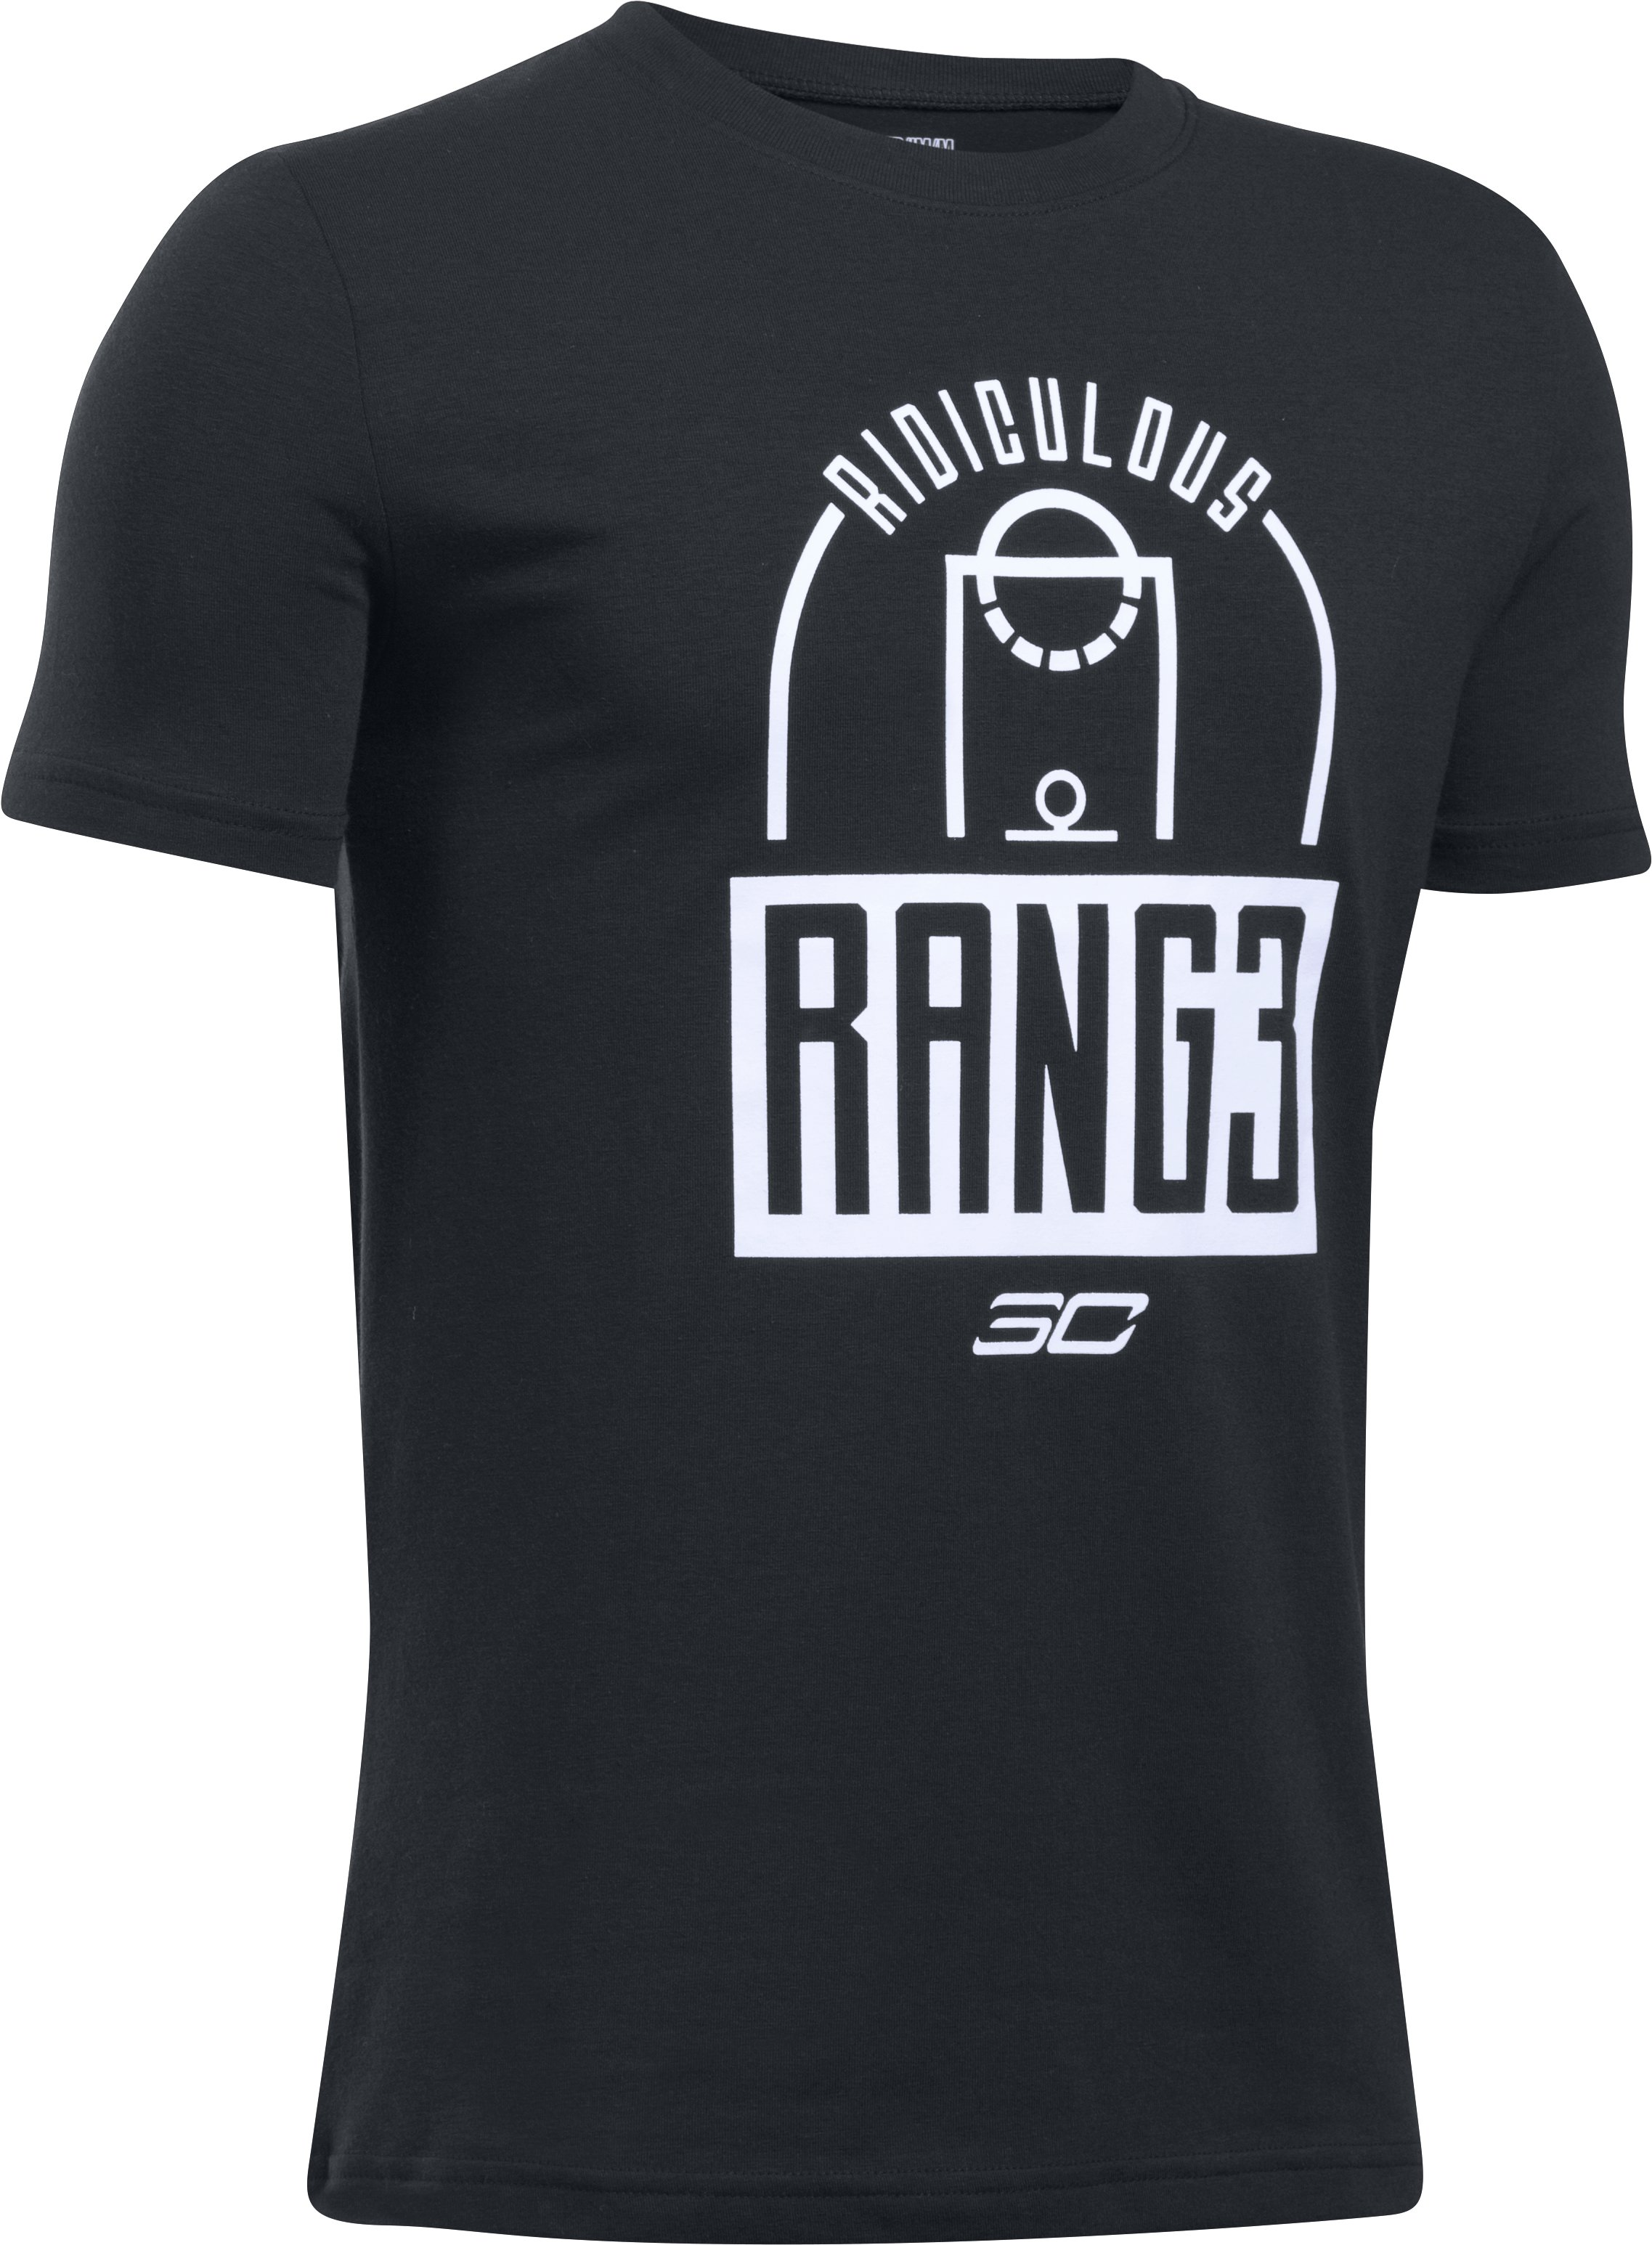 Boys' SC30 Ridiculous Range T-Shirt, Black